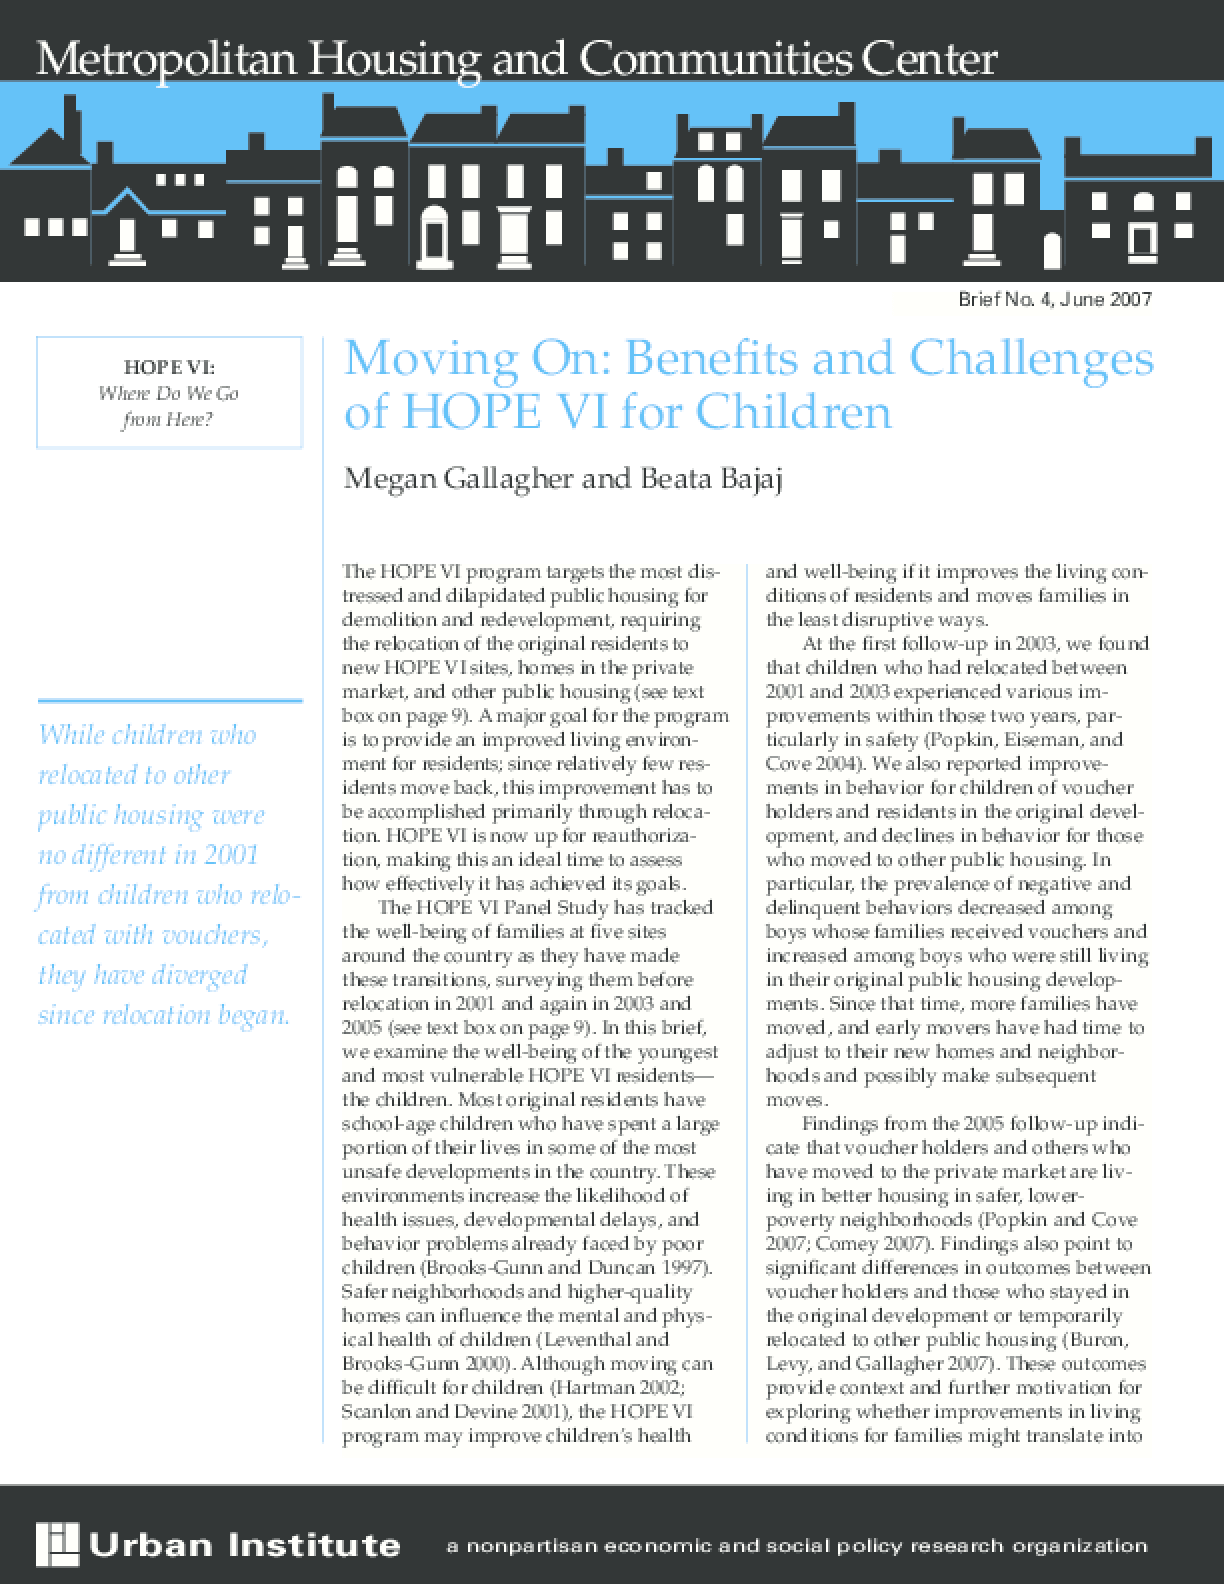 Moving On: Benefits and Challenges of HOPE VI for Children